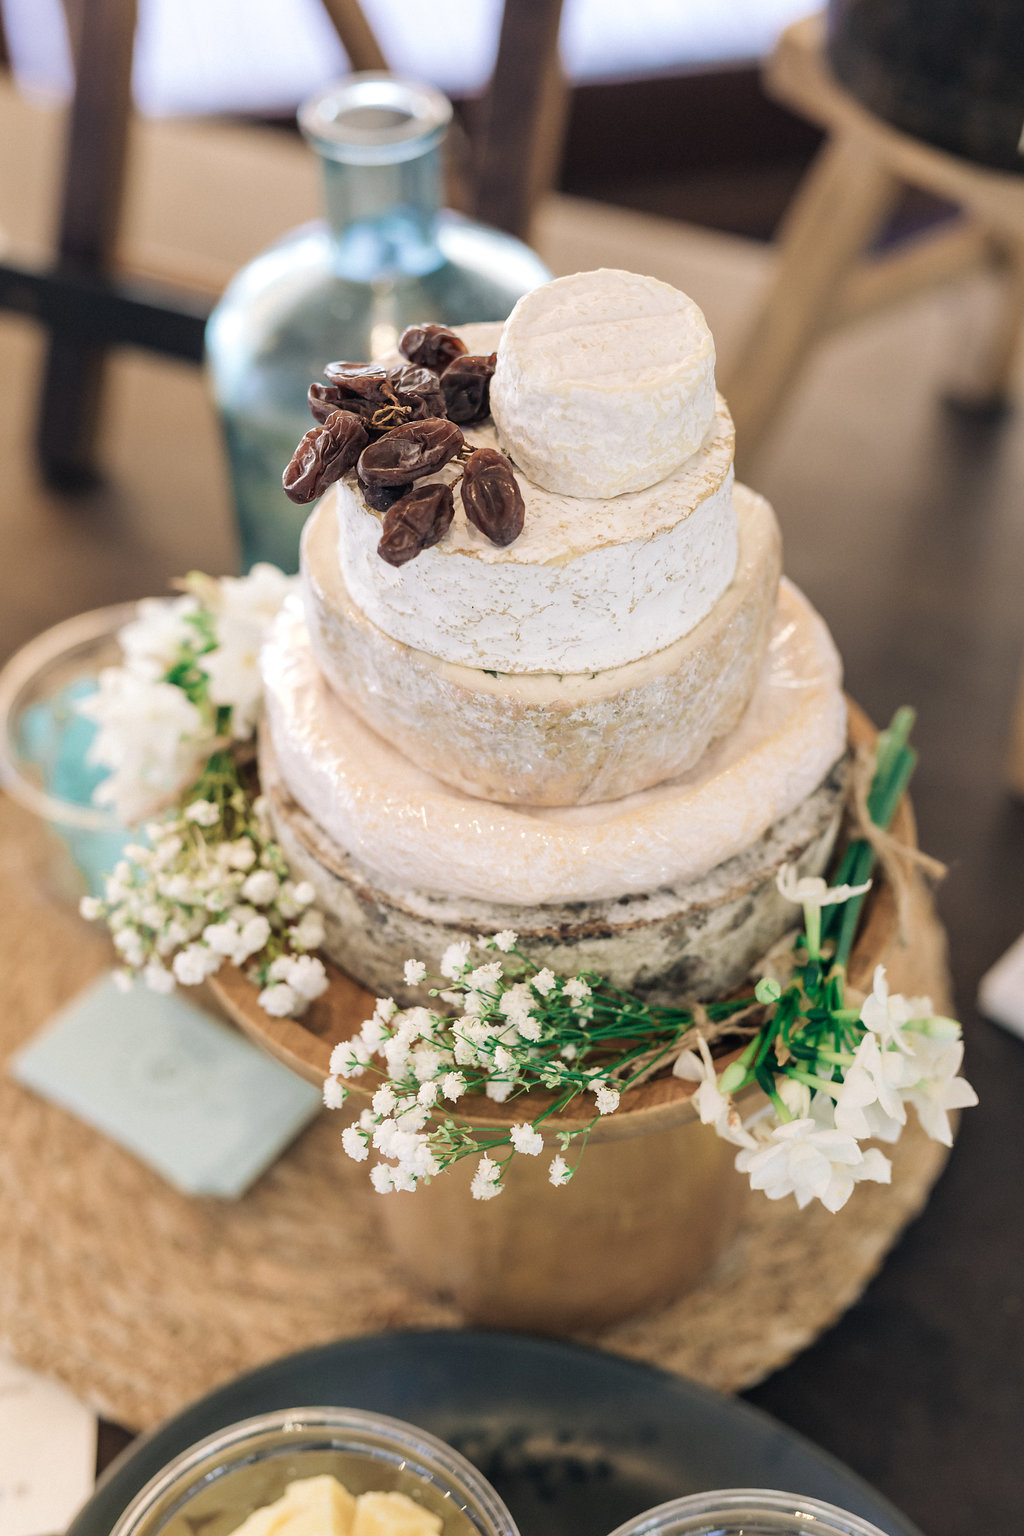 Cheese-Station-Food-Wedding-Cake.jpg